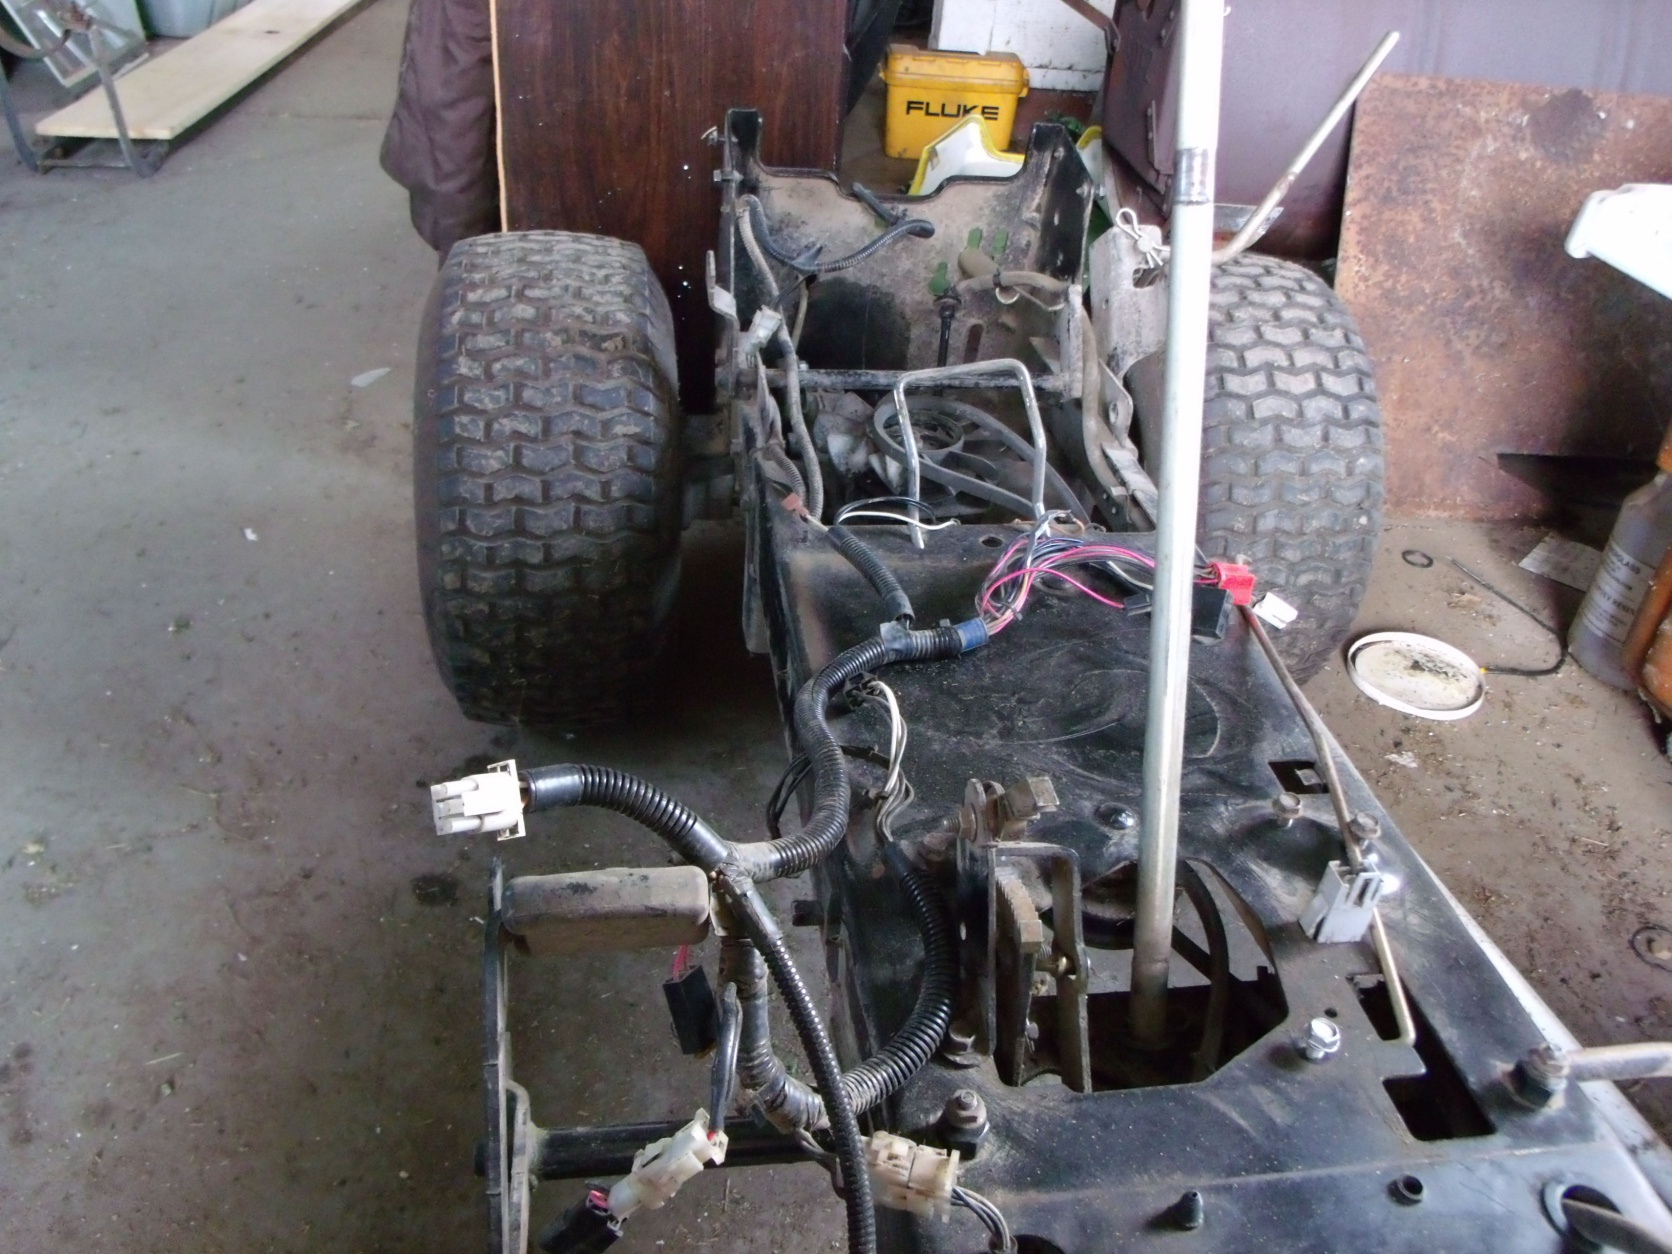 motor swap - MyTractorForum com - The Friendliest Tractor Forum and